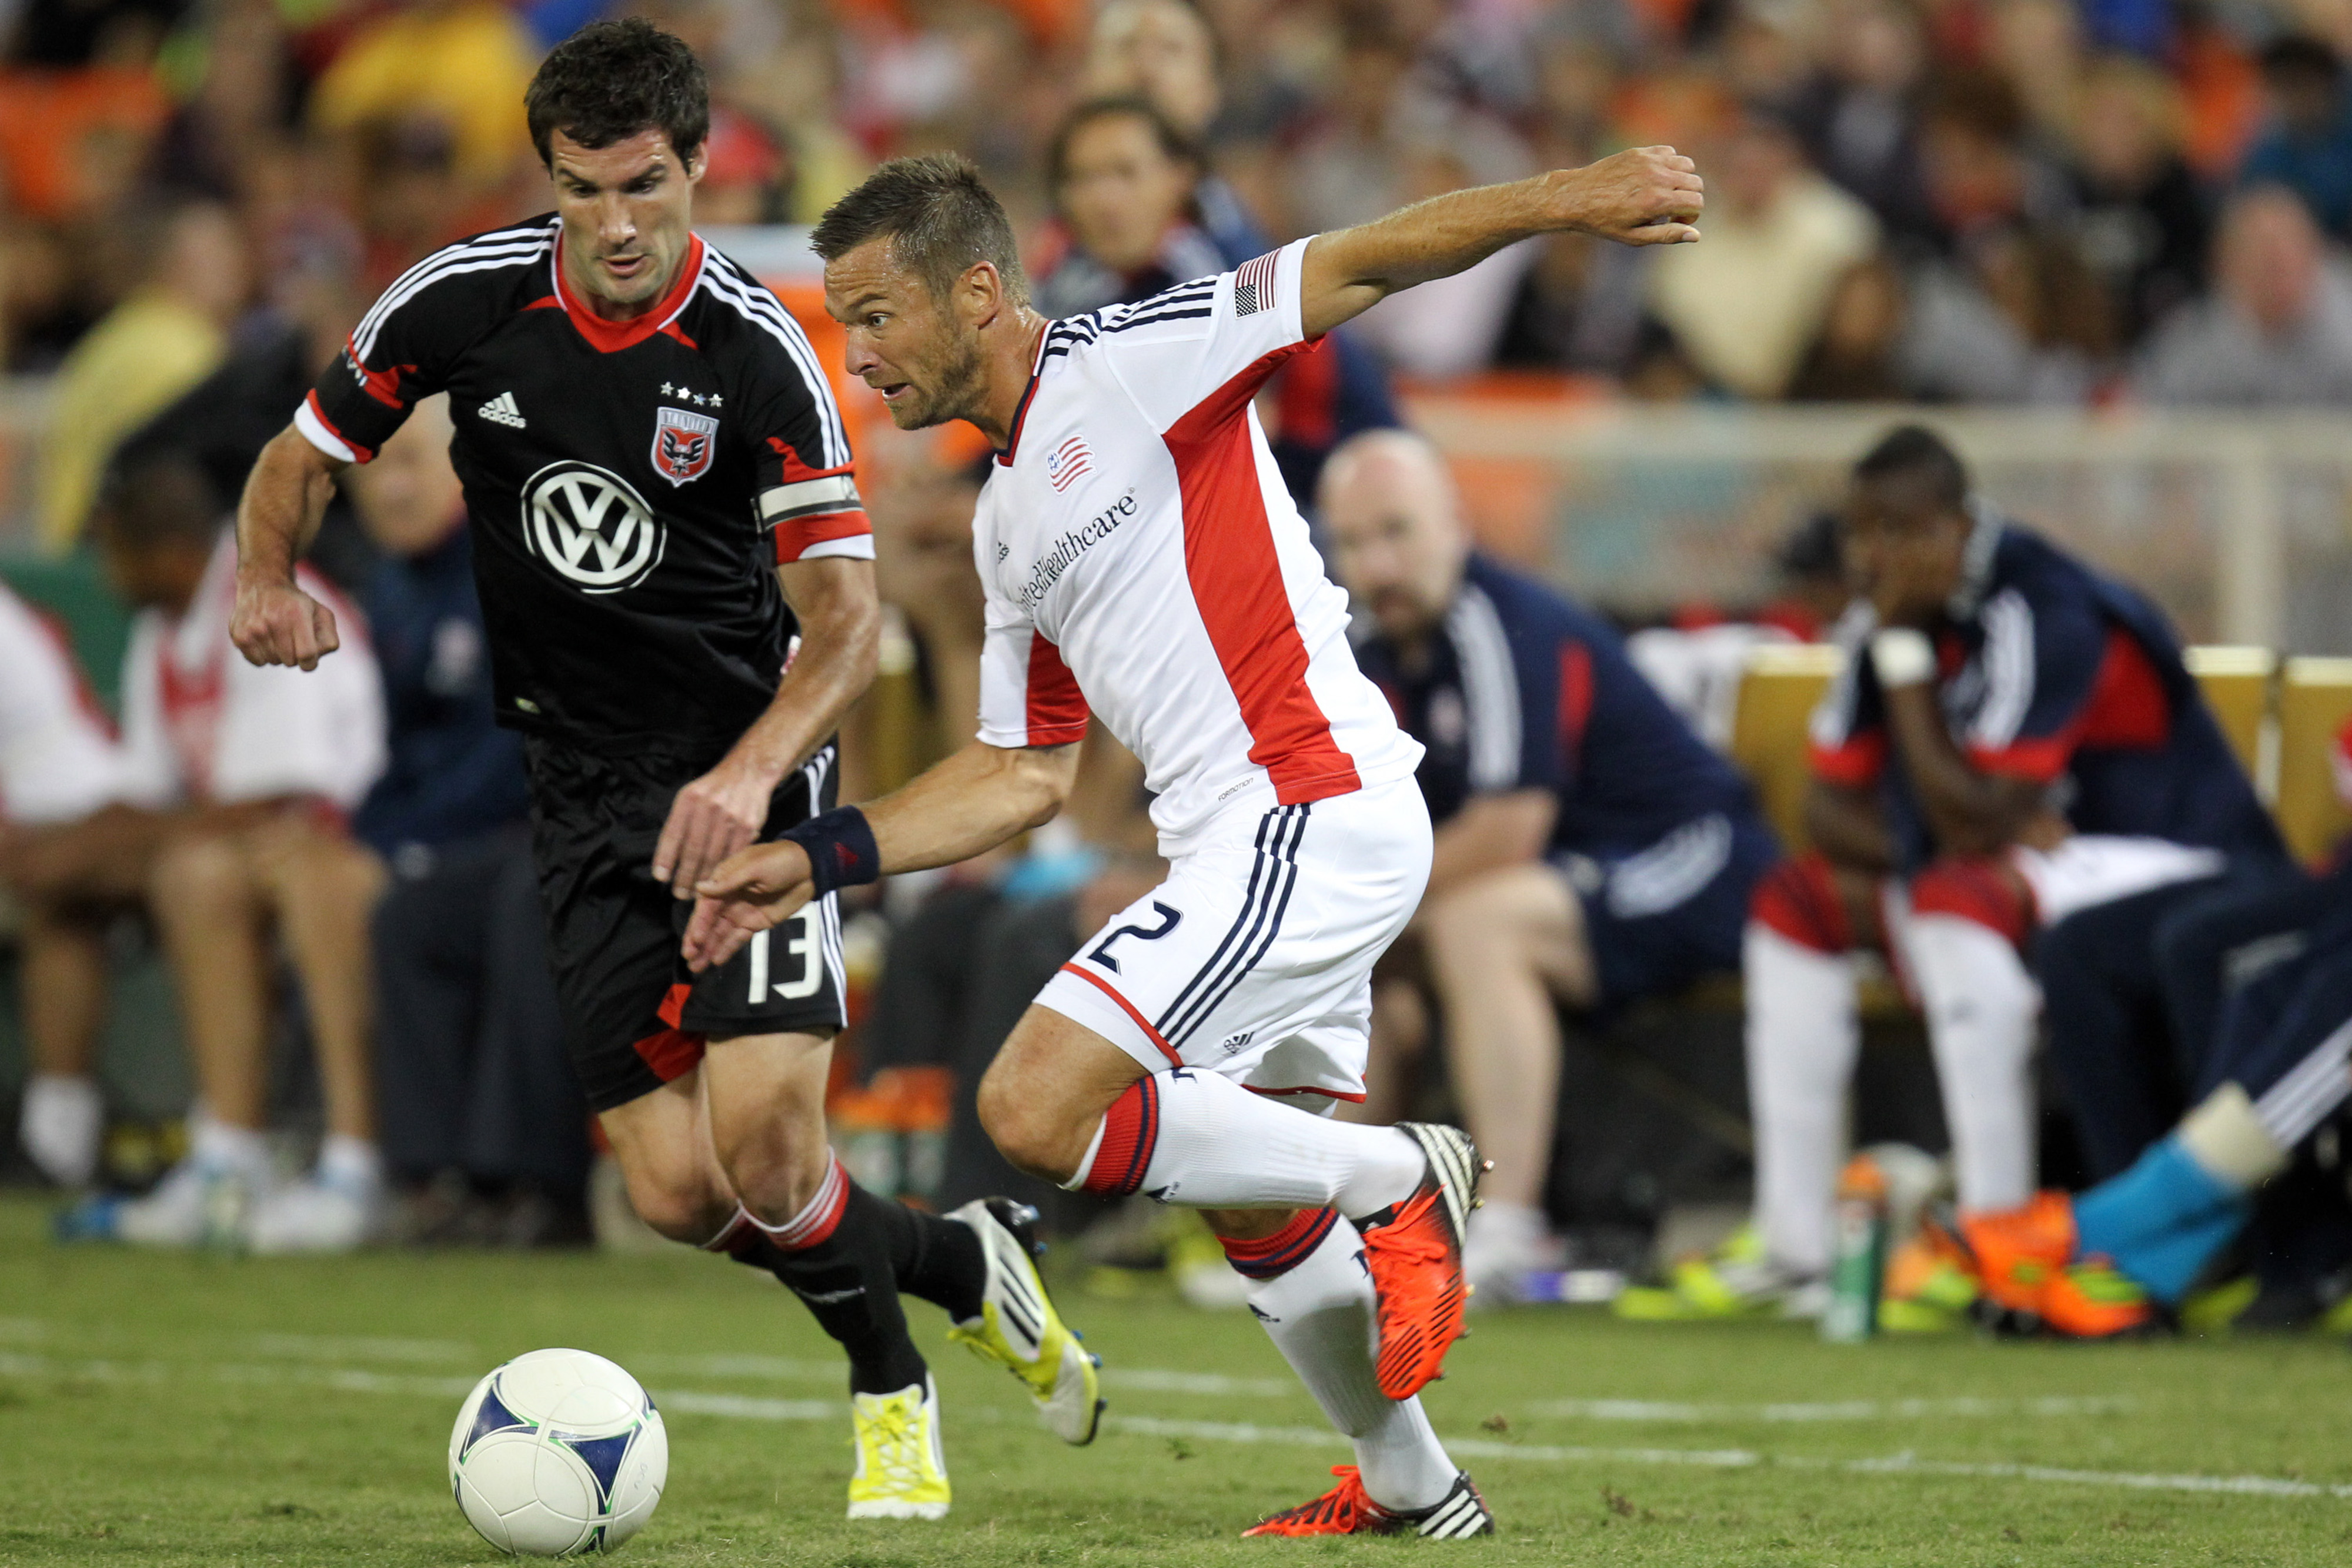 WASHINGTON, DC - SEPTEMBER 15: Florian Lechner #2 of the New England Revolution controls the ball against Chris Pontius #13 of D.C. United at RFK Stadium on September 15, 2012 in Washington, DC.(Photo by Ned Dishman/Getty Images)